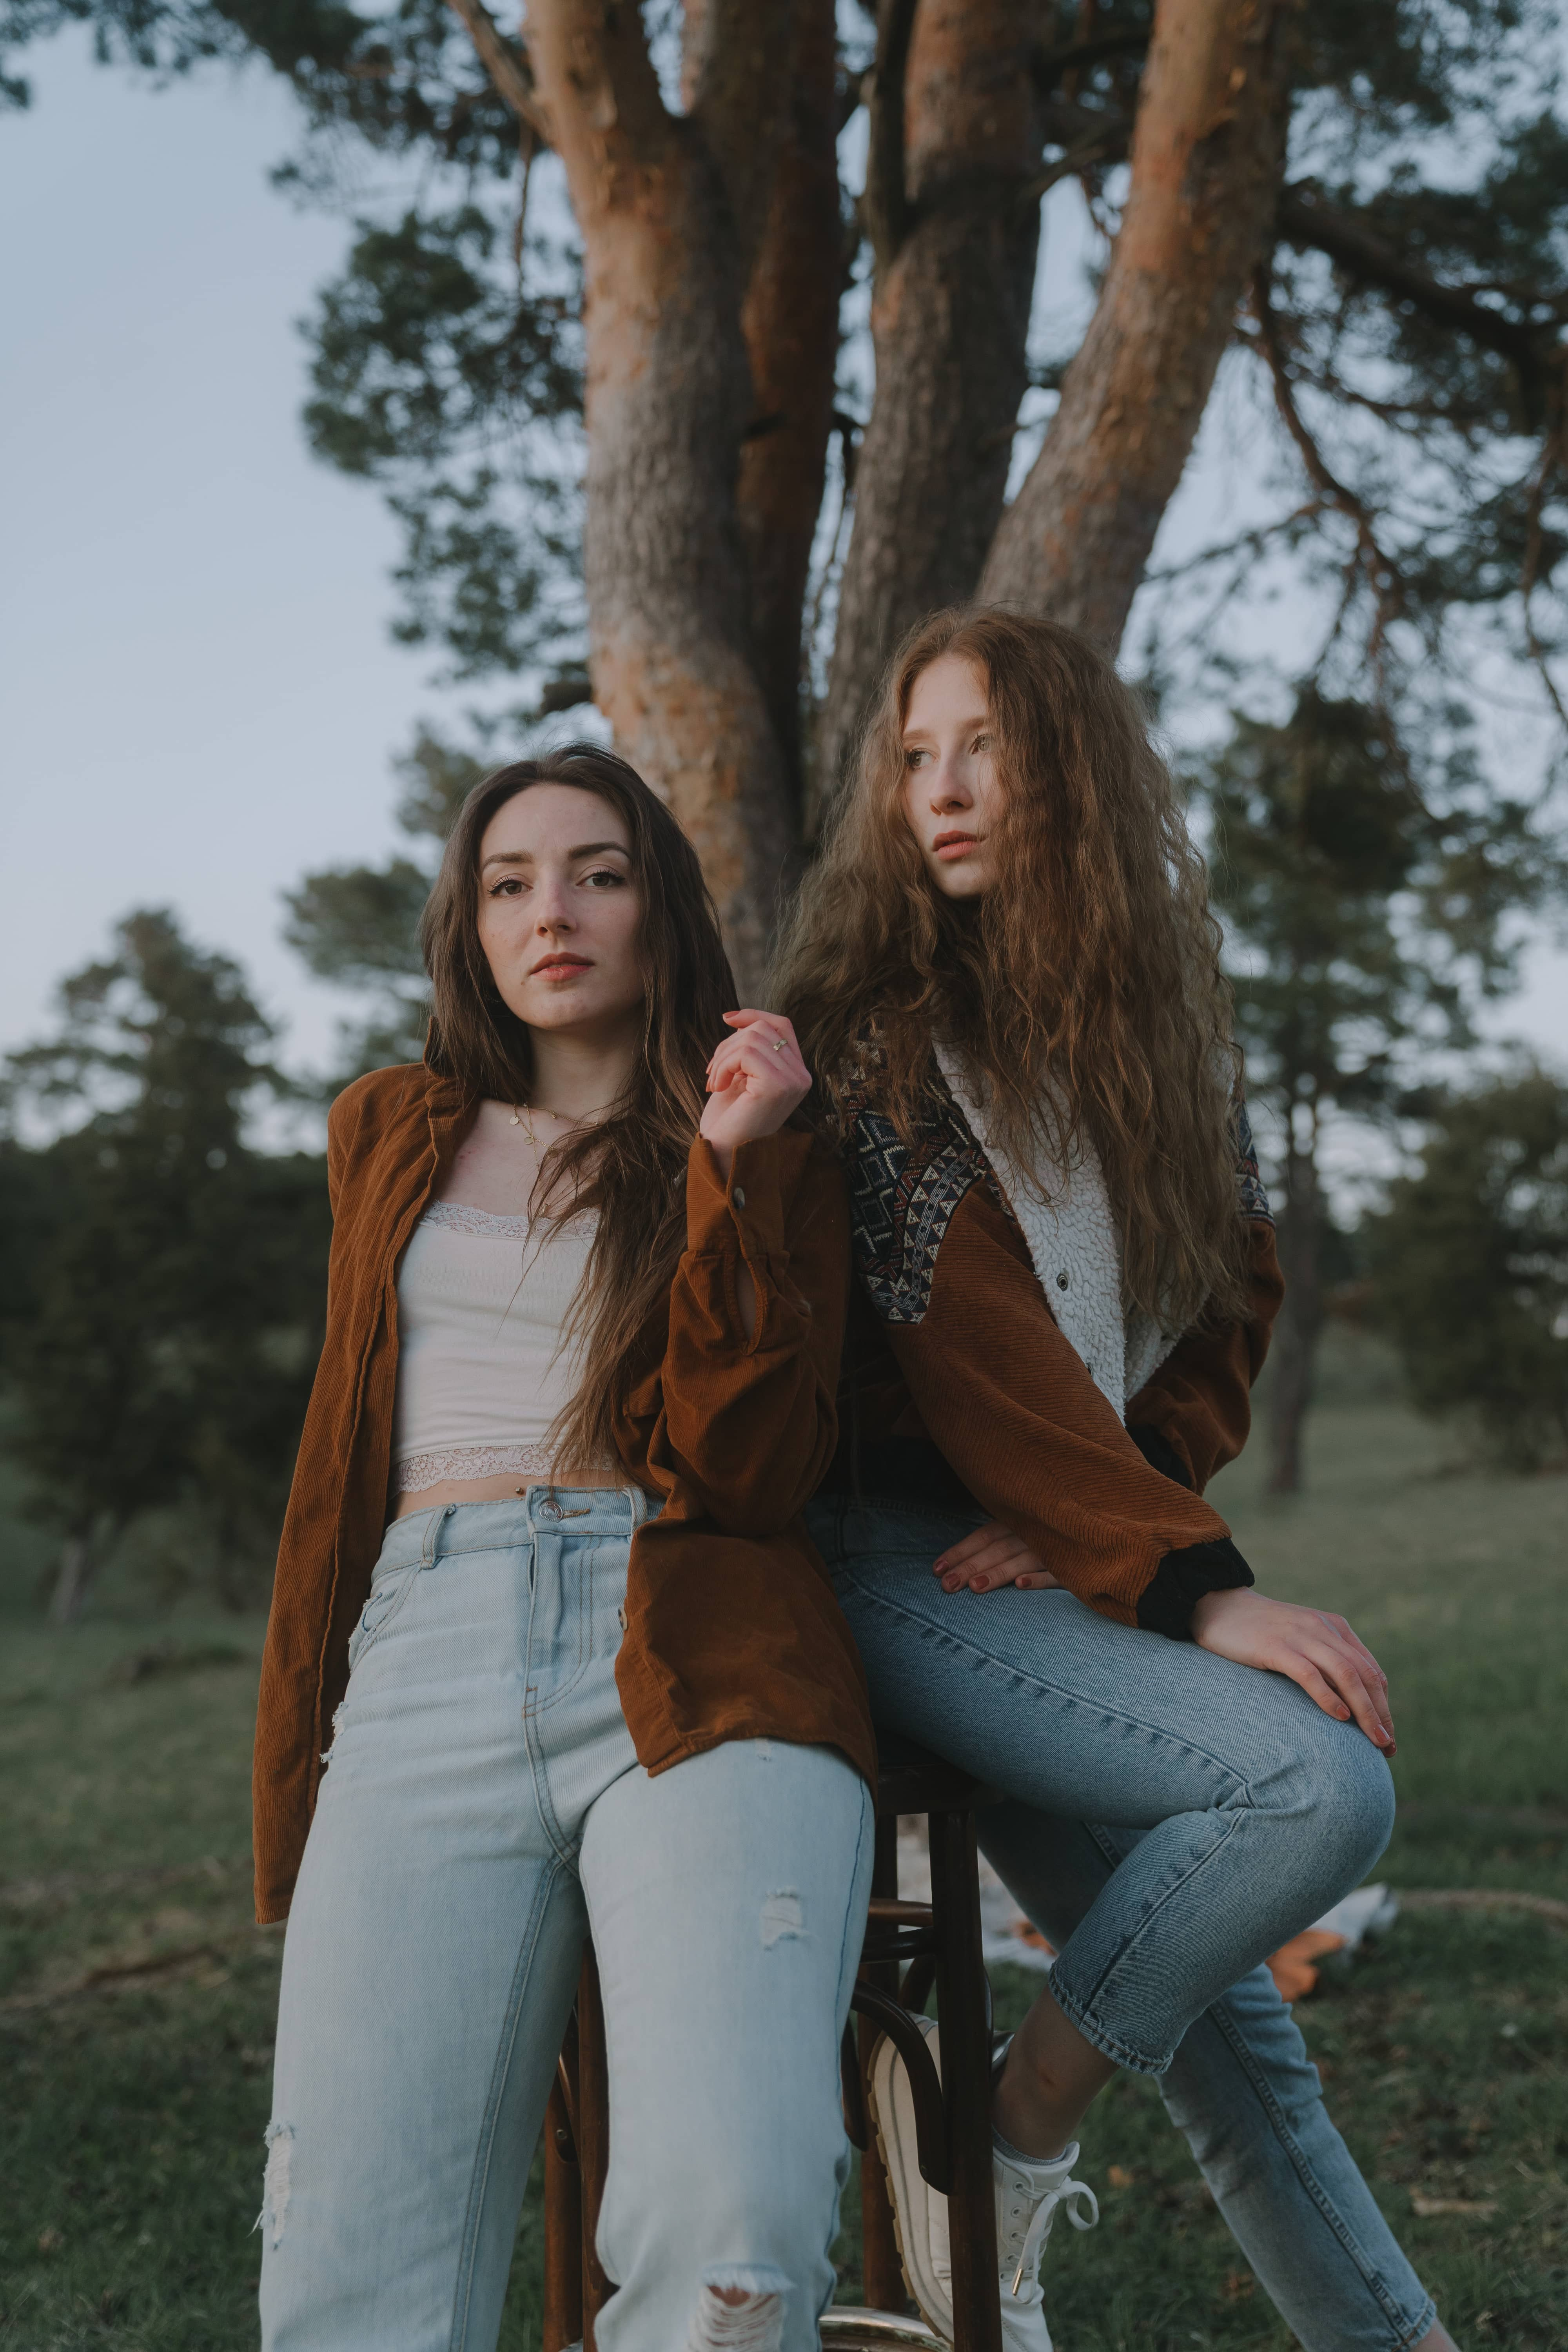 Two fashionable dressed girls leaning against each other